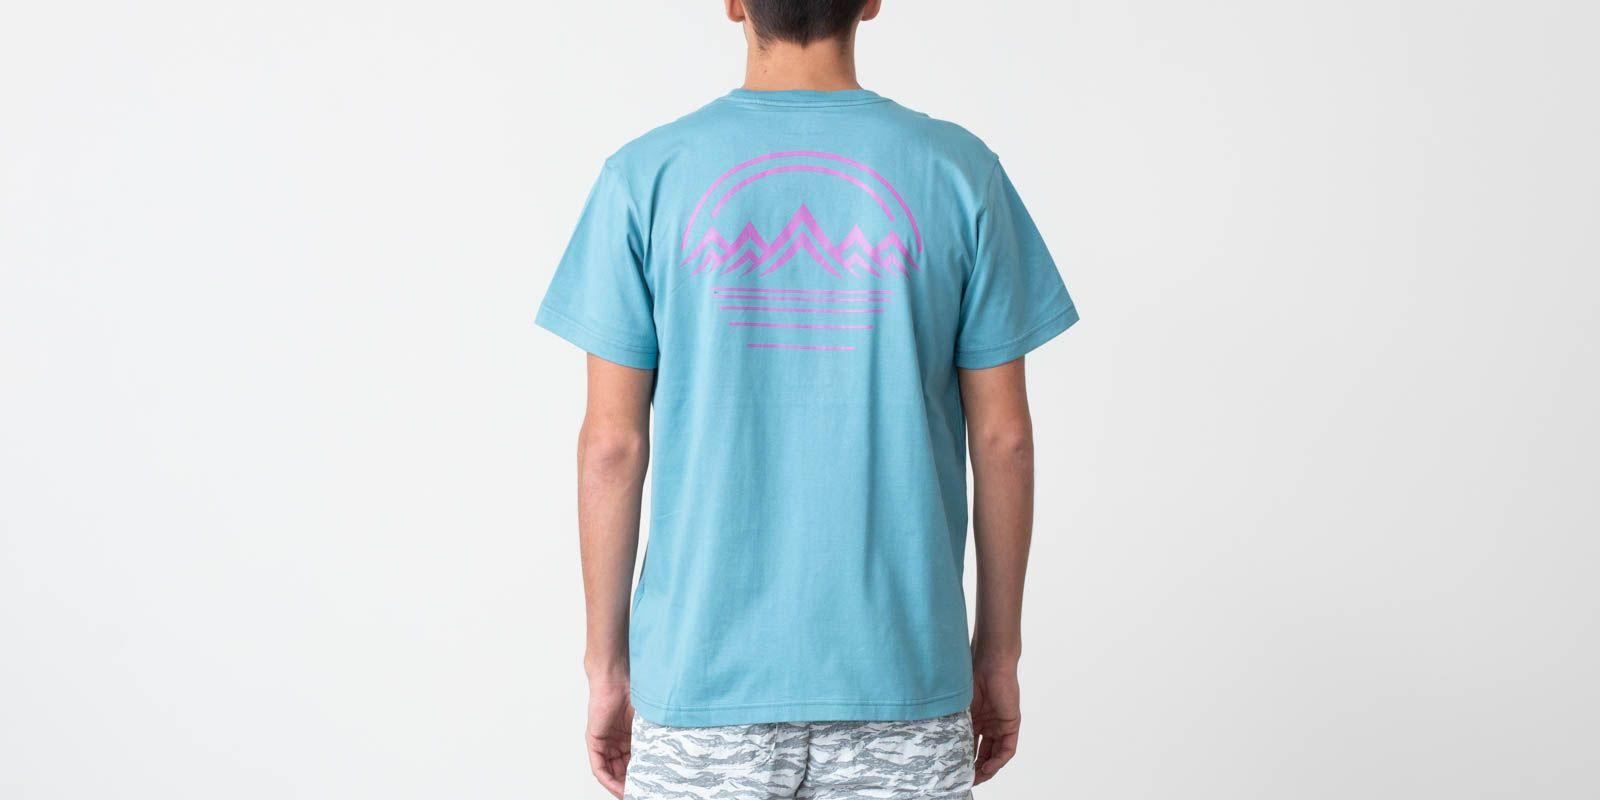 aed24392b Lyst - Asics Ymc Shortsleeves Tee Gris Blue in Blue for Men